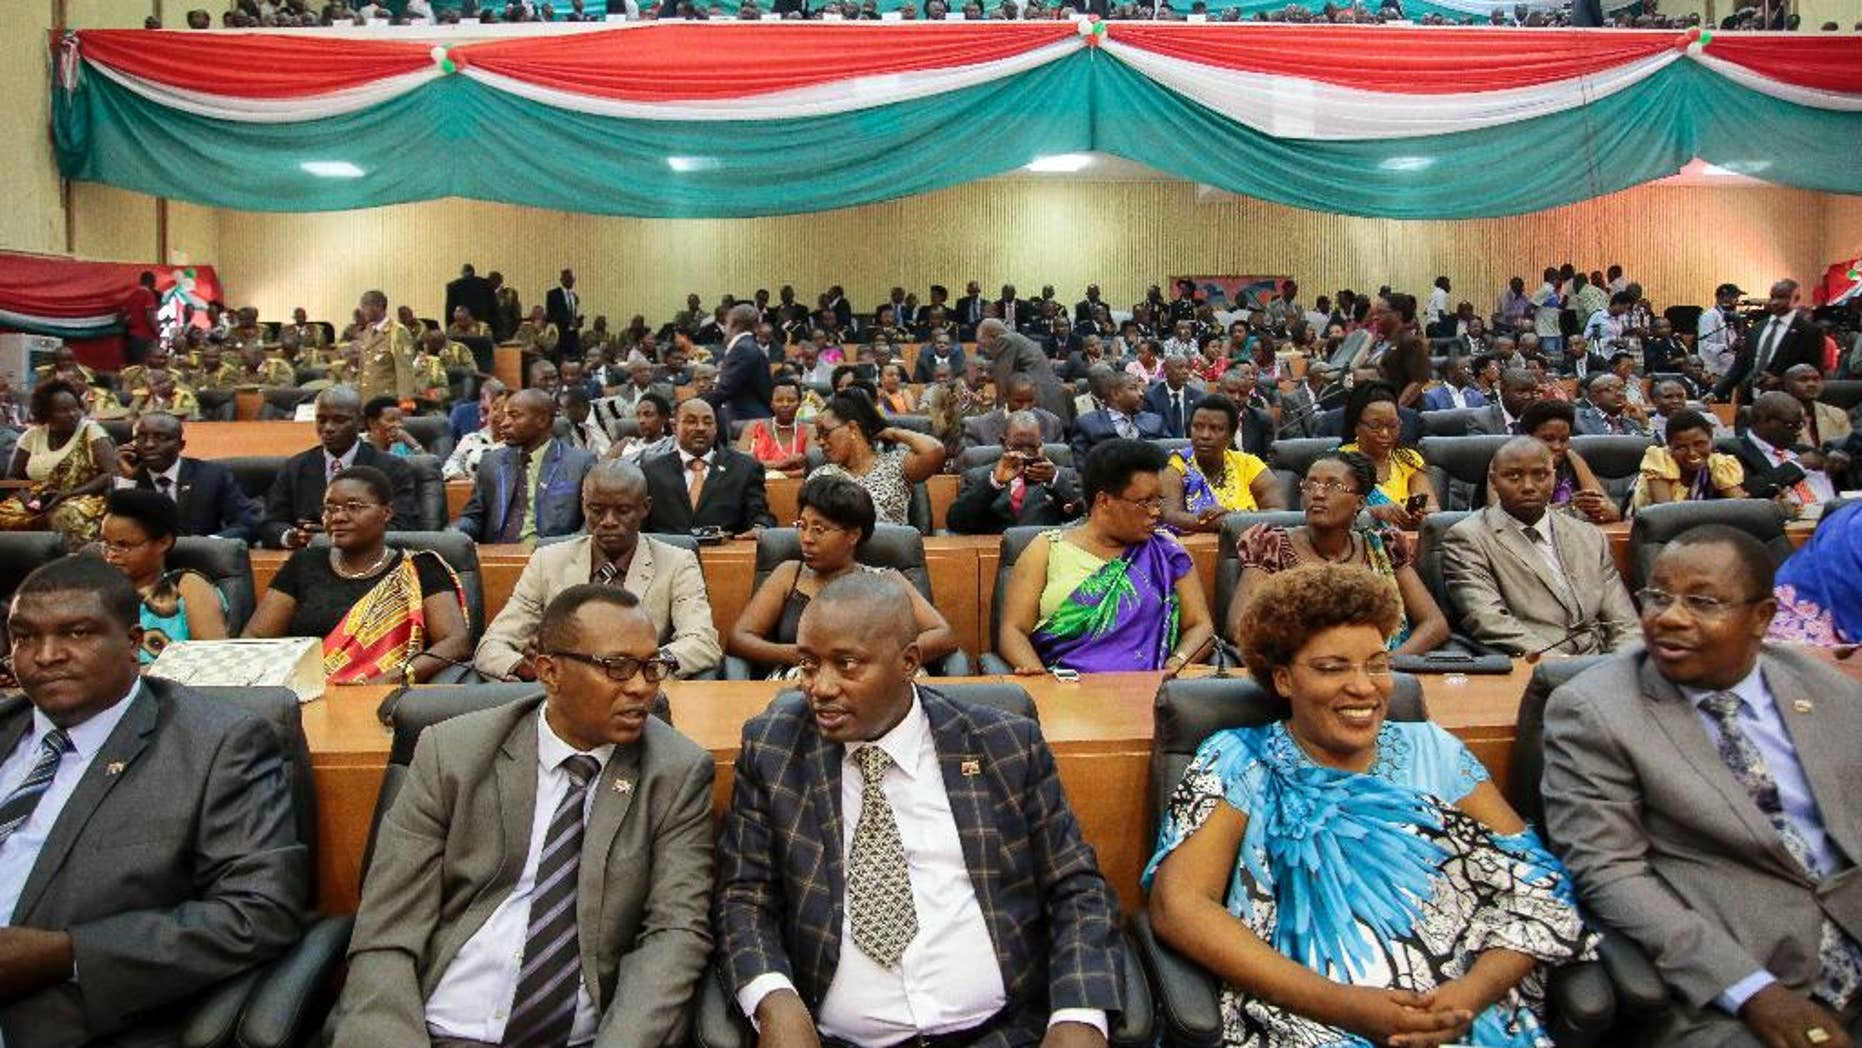 FILE - In this Thursday, Aug. 20, 2015 file photo, members of Burundi's Parliament prepare for the swearing-in ceremony of President Pierre Nkurunziza, in the parliament building in Bujumbura, Burundi. Lawmakers in Burundi overwhelmingly voted Wednesday, Oct. 12, 2016 in support of a plan to withdraw from the International Criminal Court (ICC), escalating a bitter dispute with the international community over the human rights situation in the East African country, although the decision is not immediate. (AP Photo/Gildas Ngingo, File)